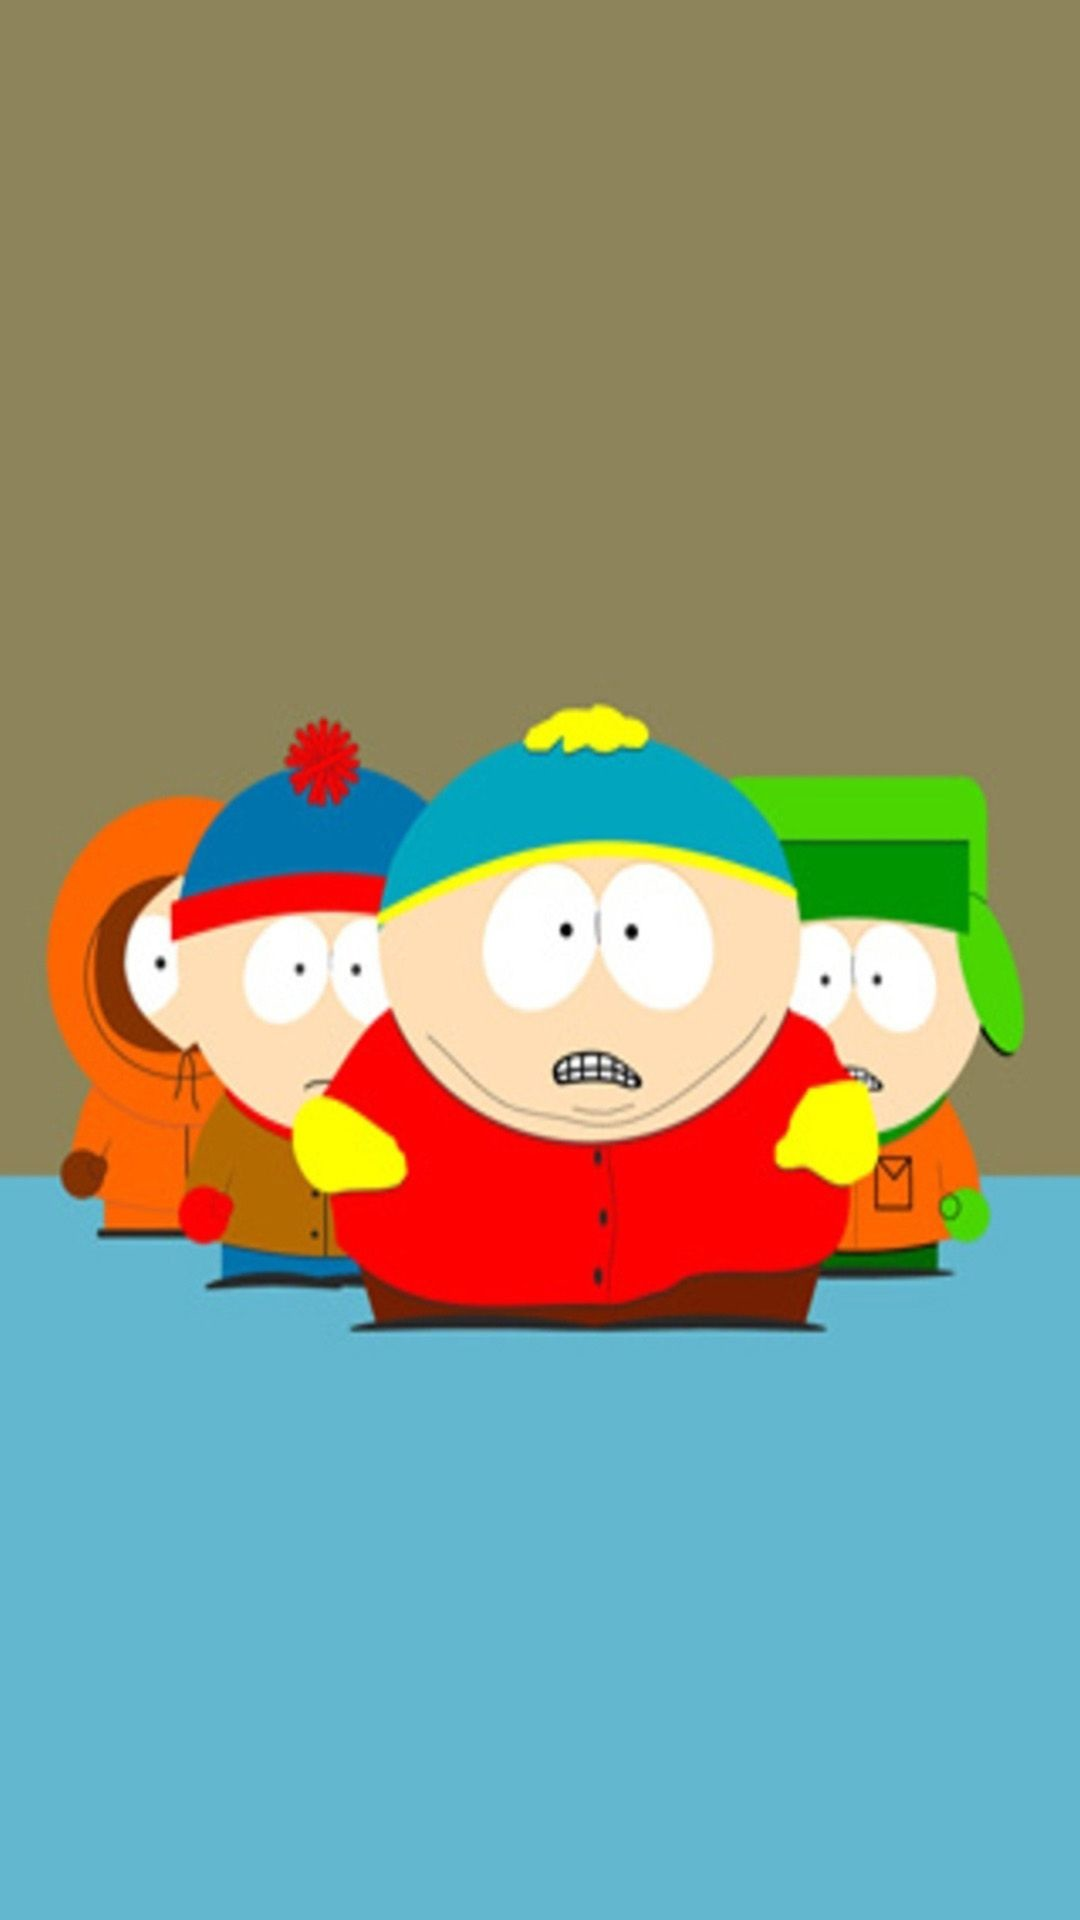 1080x1920 100% Quality HD - South Park - Fine South Park Wallpapers